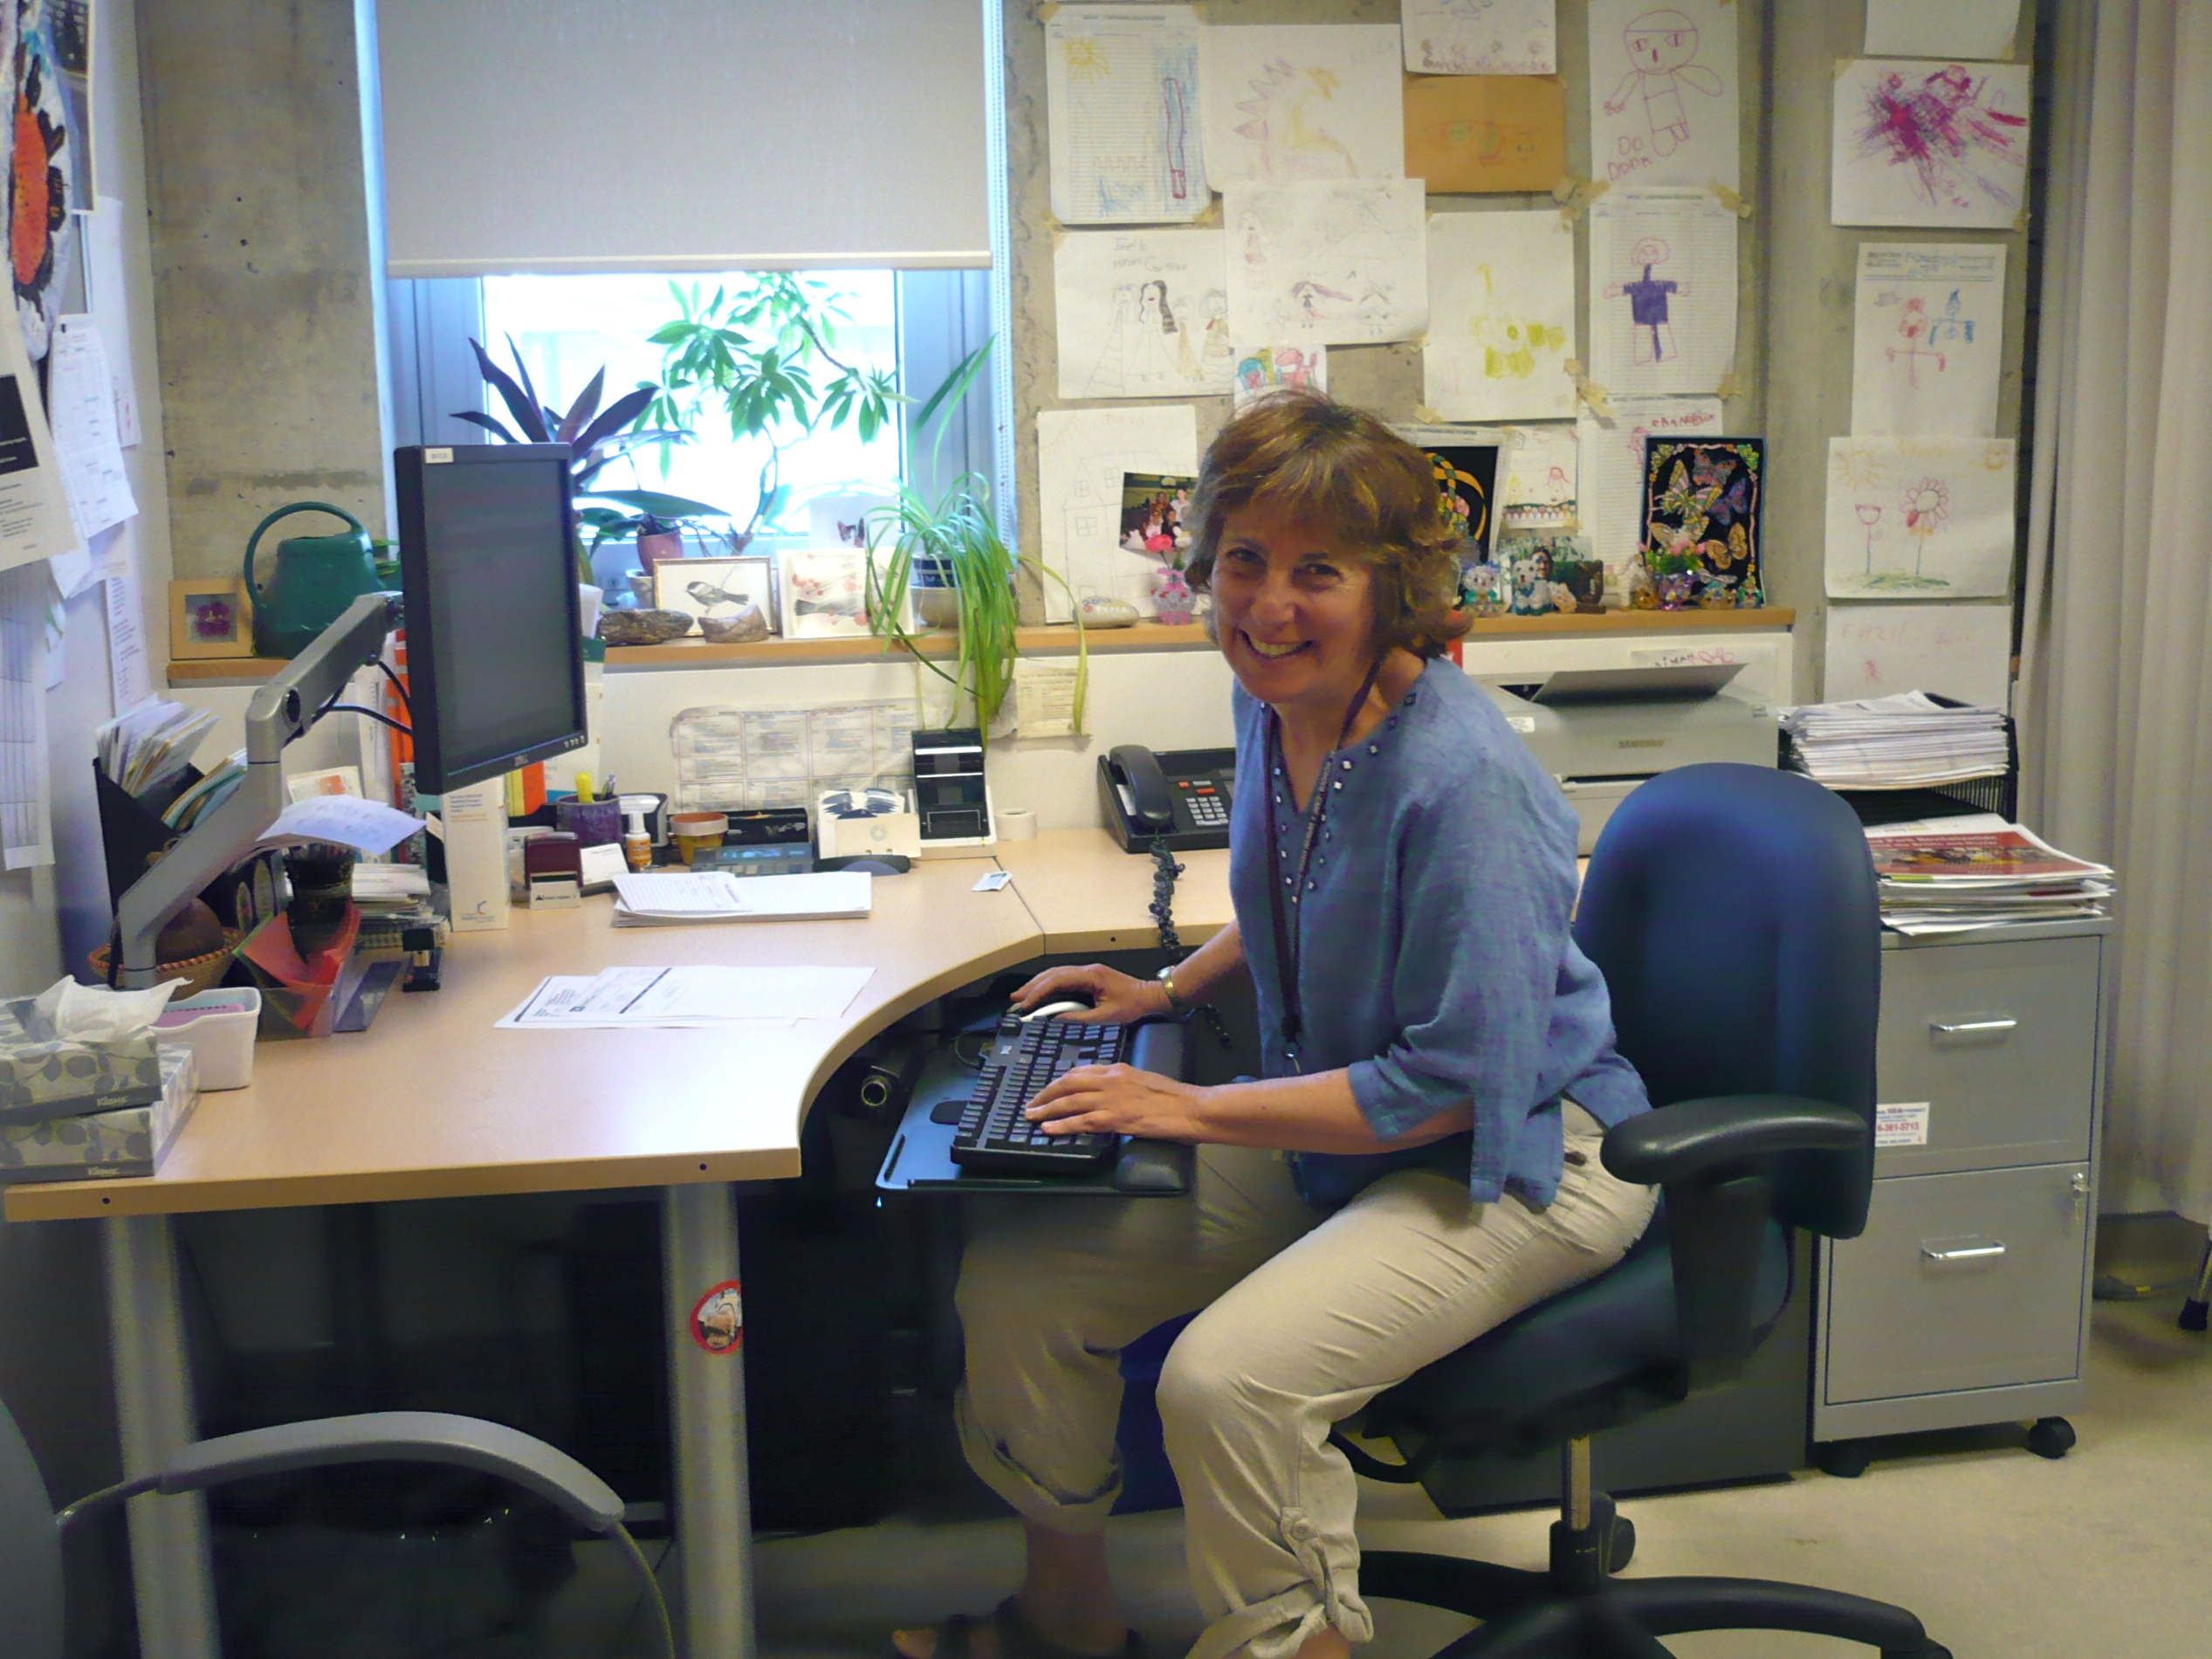 Miriam Garfinkle in her community clinic office